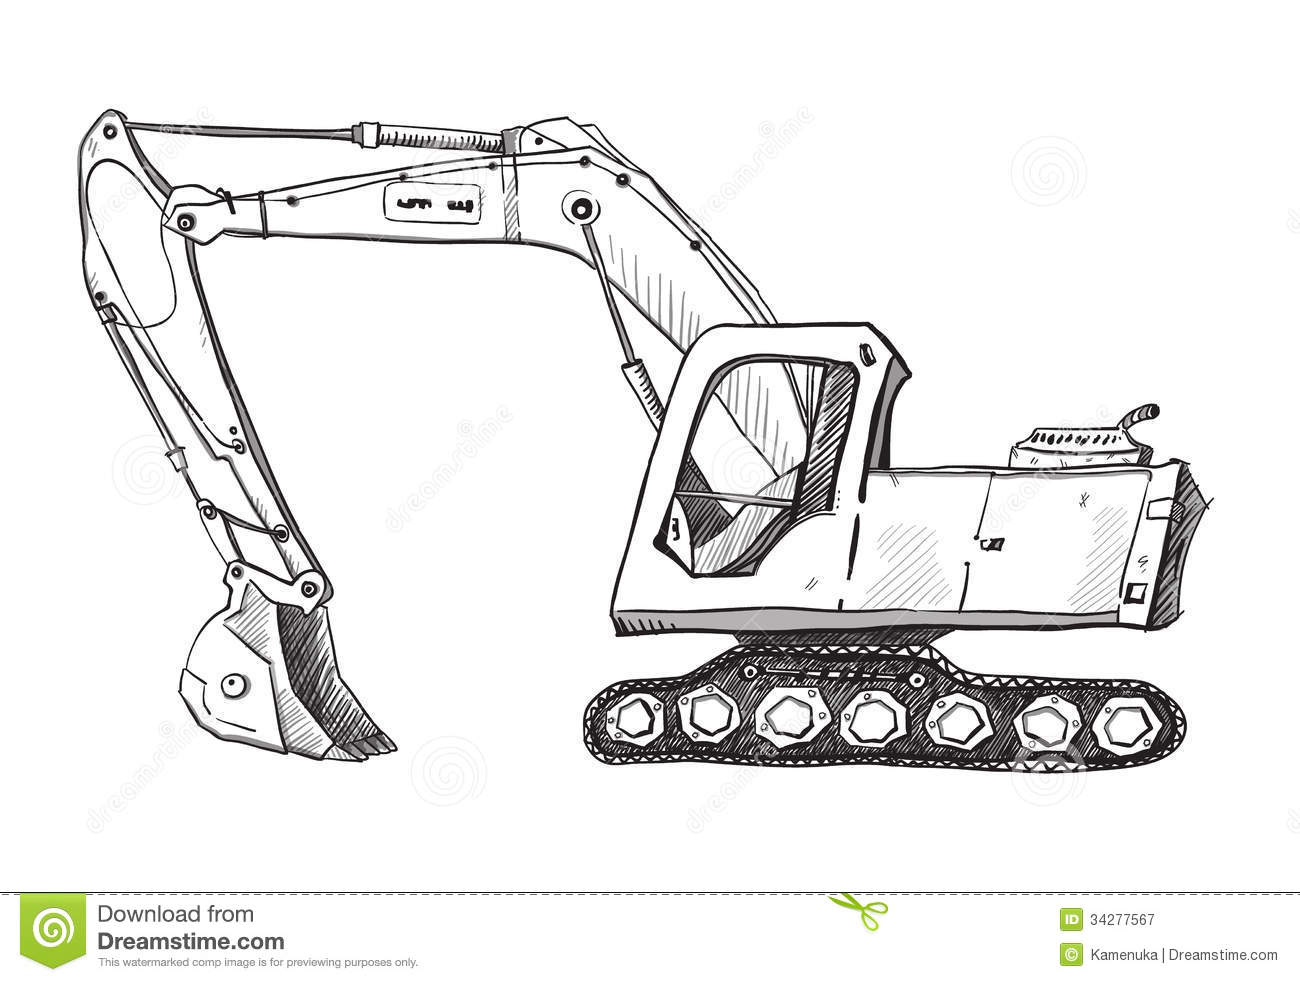 doodle excavator drawing vector eps 34277567 furthermore construction crane coloring page on construction equipment coloring pages as well as construction equipment coloring pages 2 on construction equipment coloring pages also with construction equipment coloring pages 3 on construction equipment coloring pages furthermore construction equipment coloring pages 4 on construction equipment coloring pages